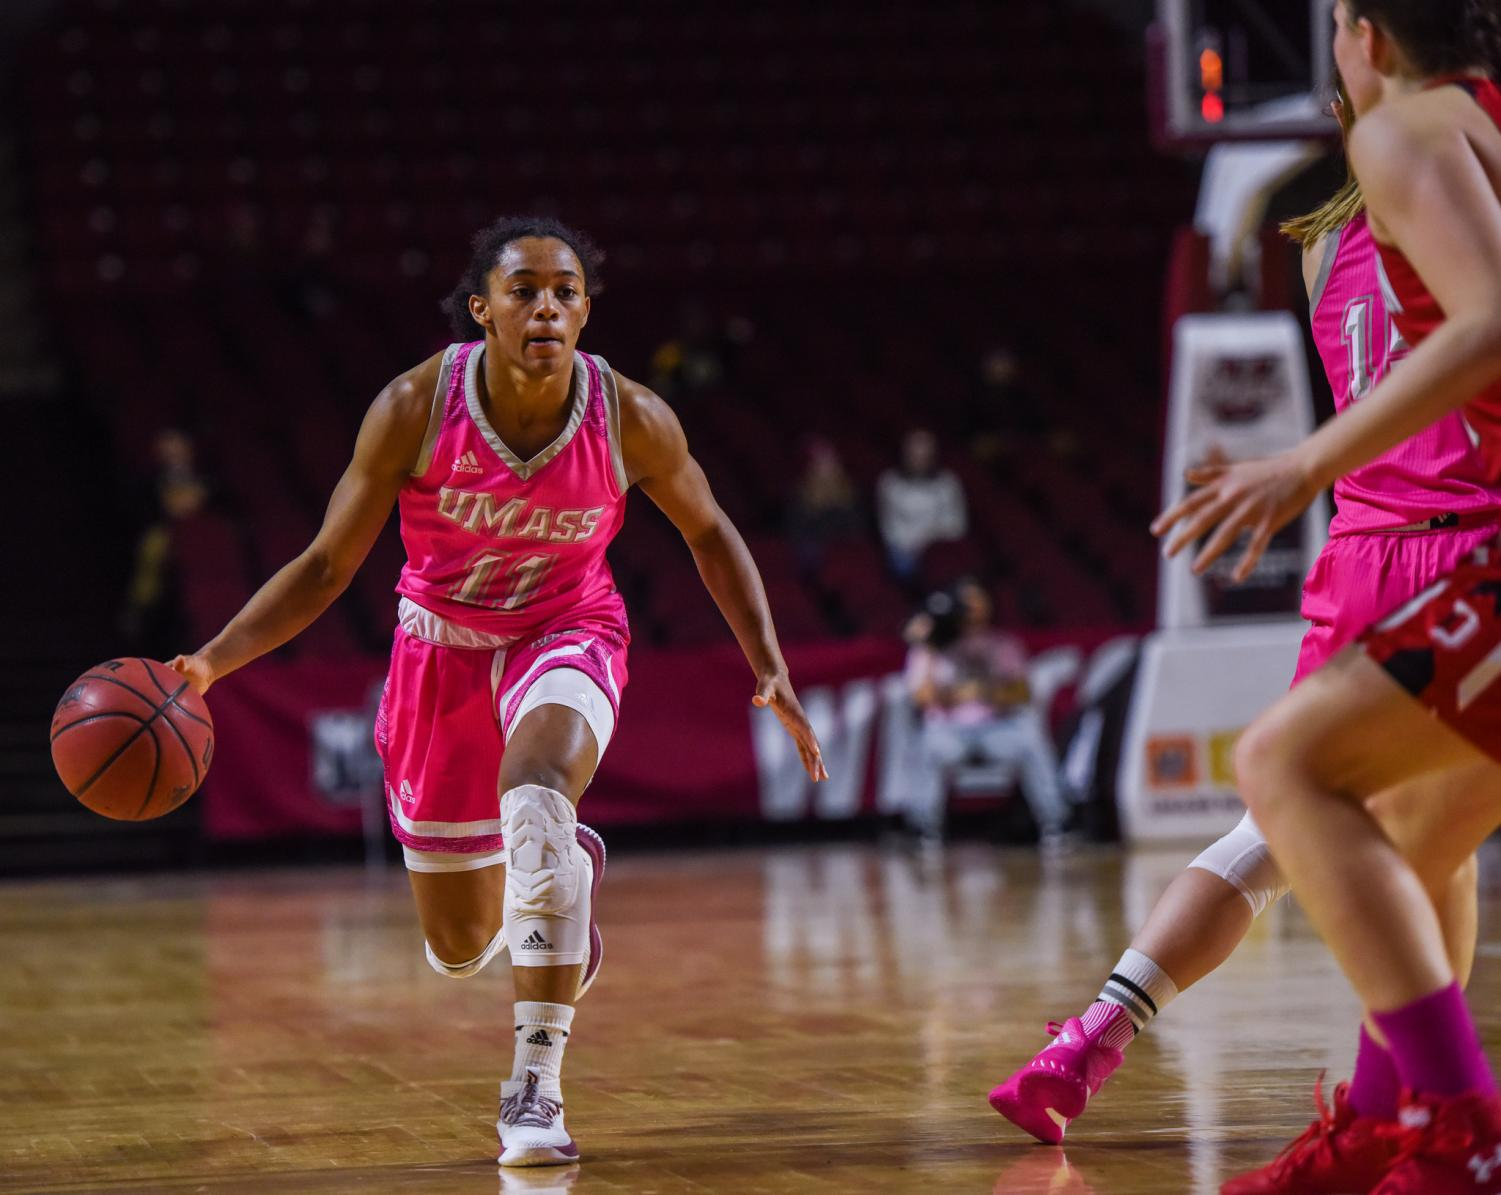 Umass Women S Basketball Falls To Saint Louis In First Round Of A  # Pose Television En Bois Pro